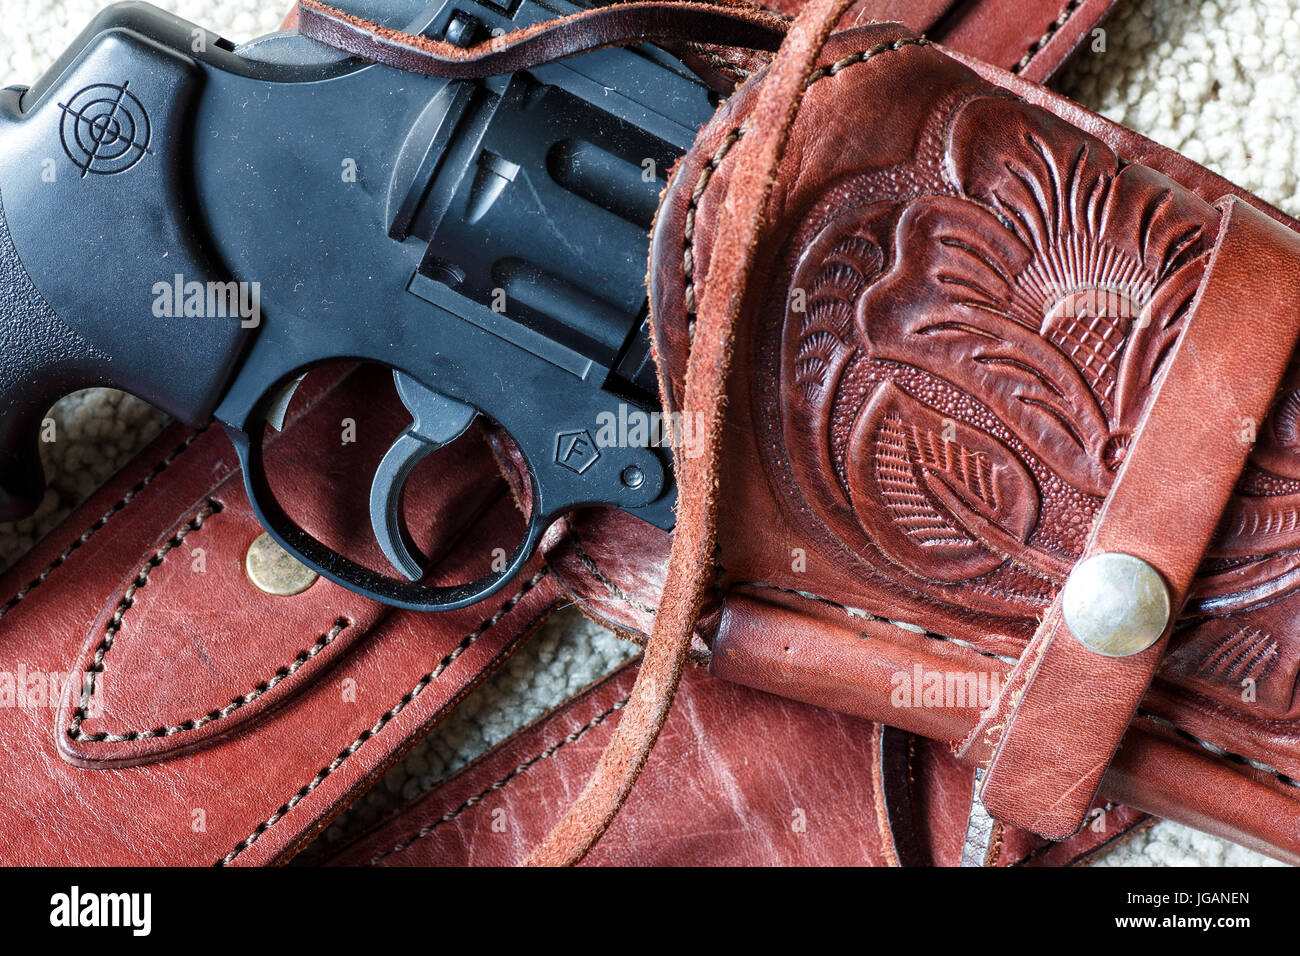 Model Pistol Stockfotos & Model Pistol Bilder - Alamy